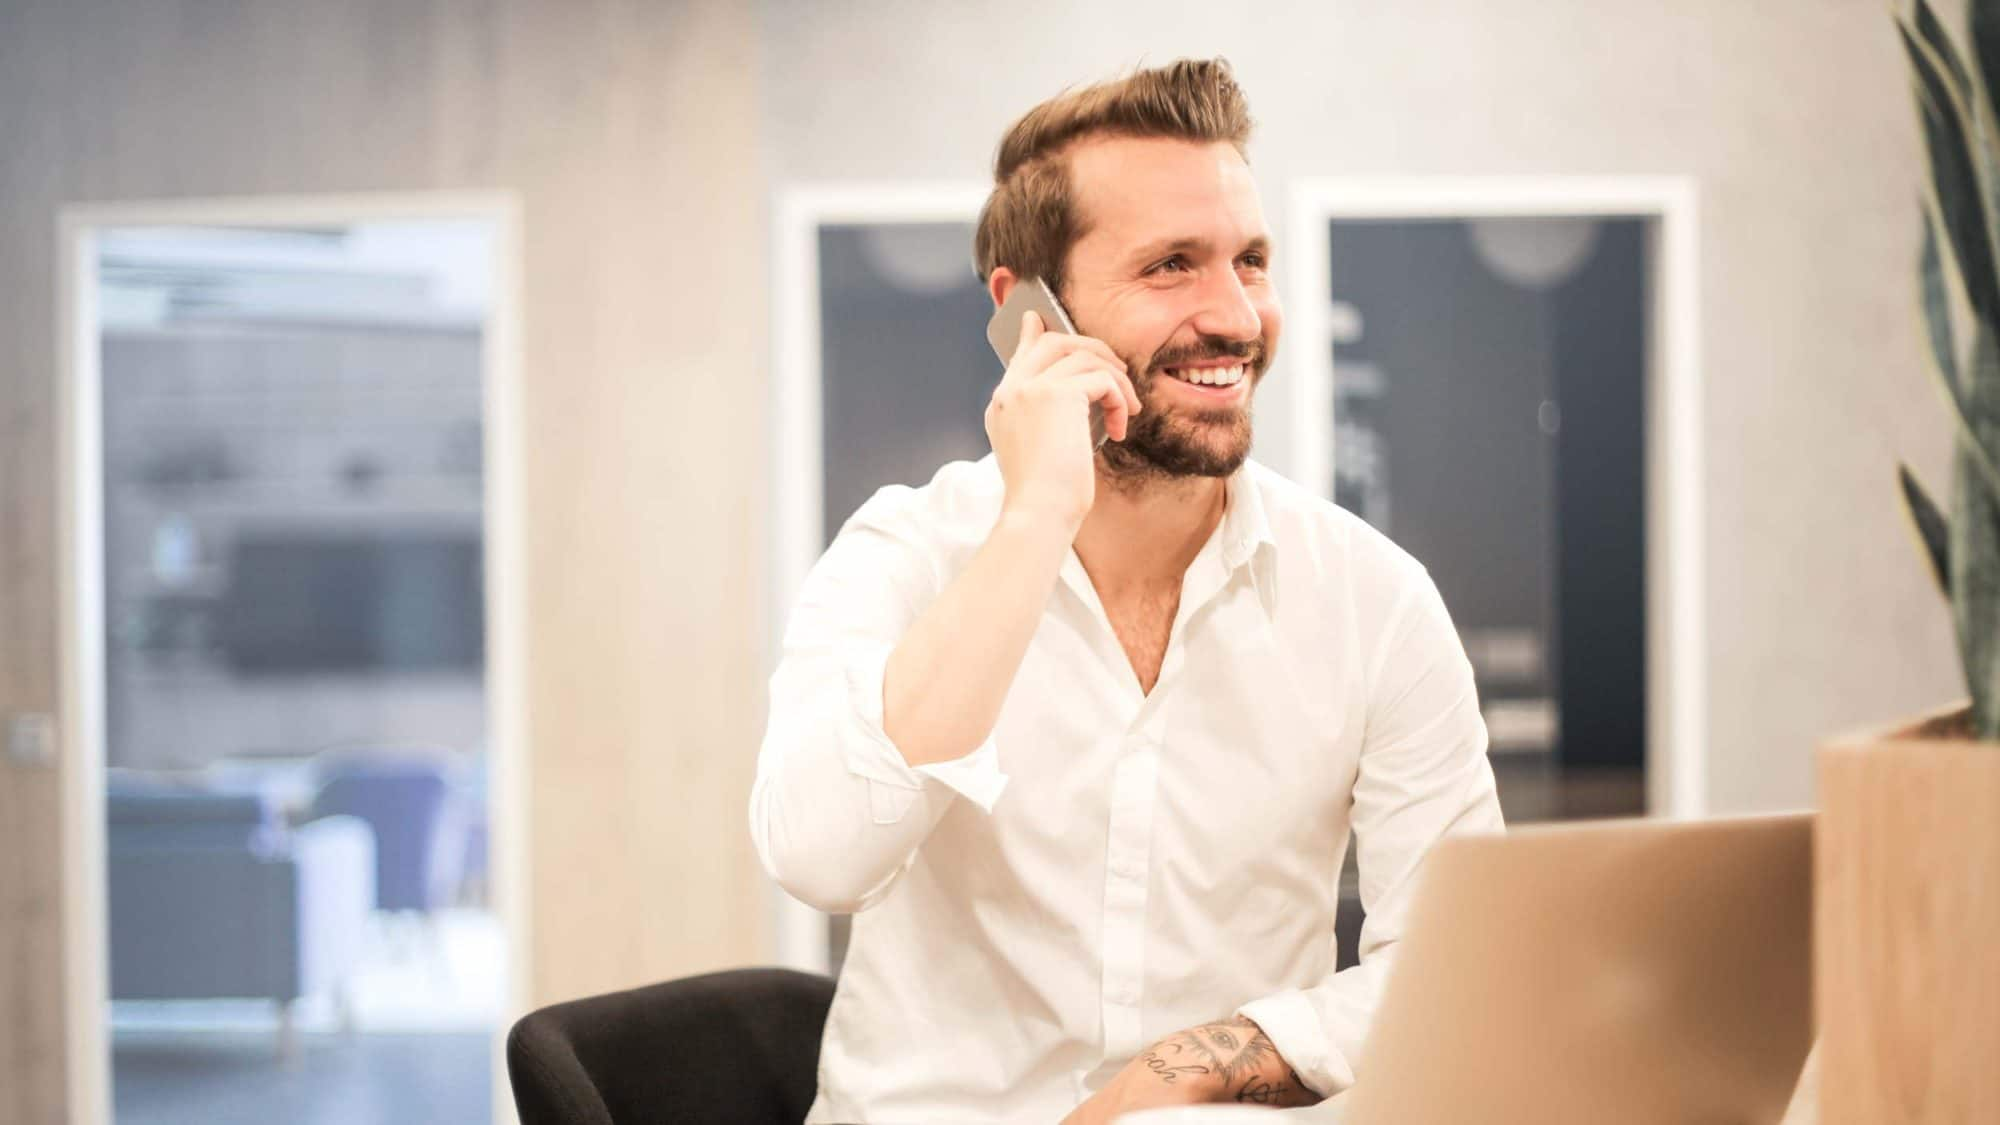 Man holding phone in office